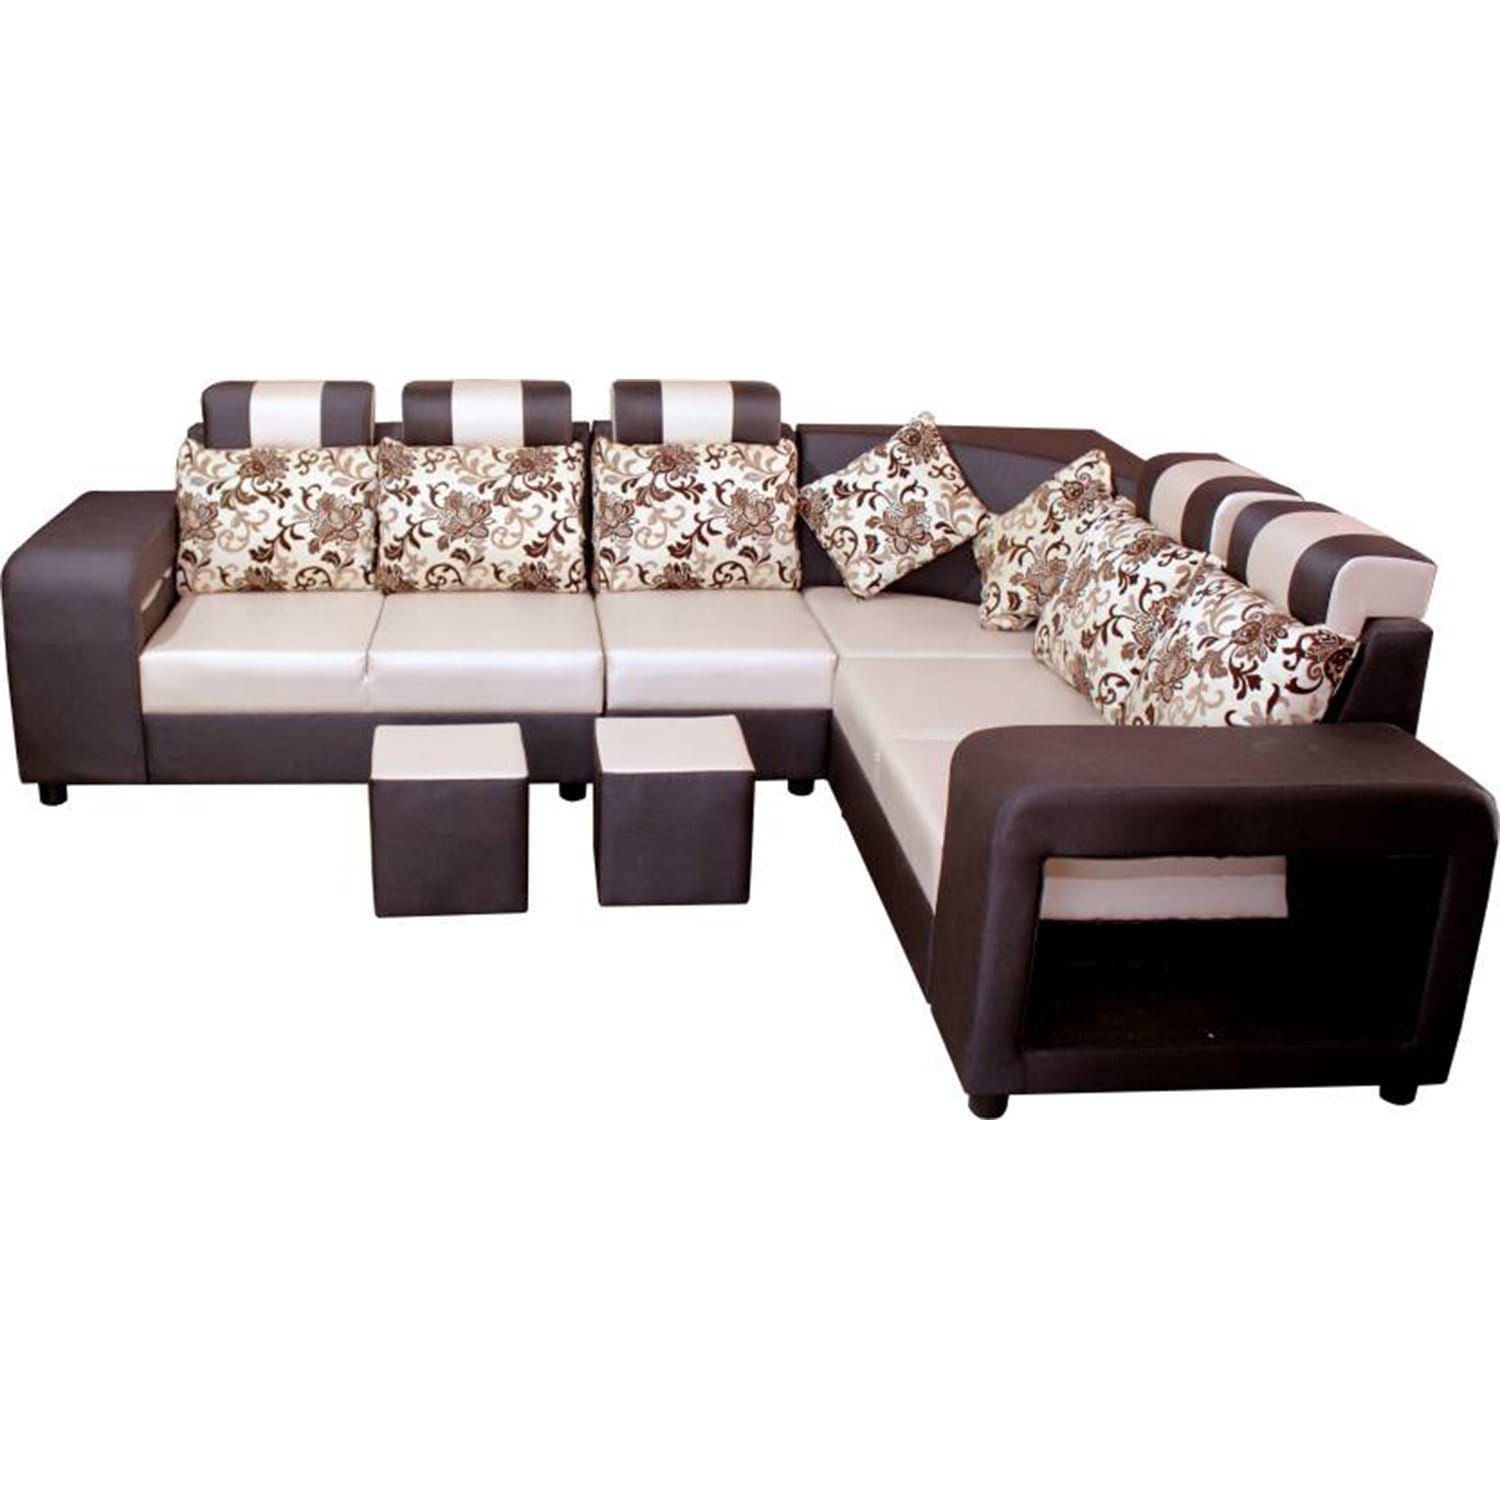 12 Best L Shaped Leather Sofa Designs 2019 Best Sofa Couch Design Latest Furniture Designs